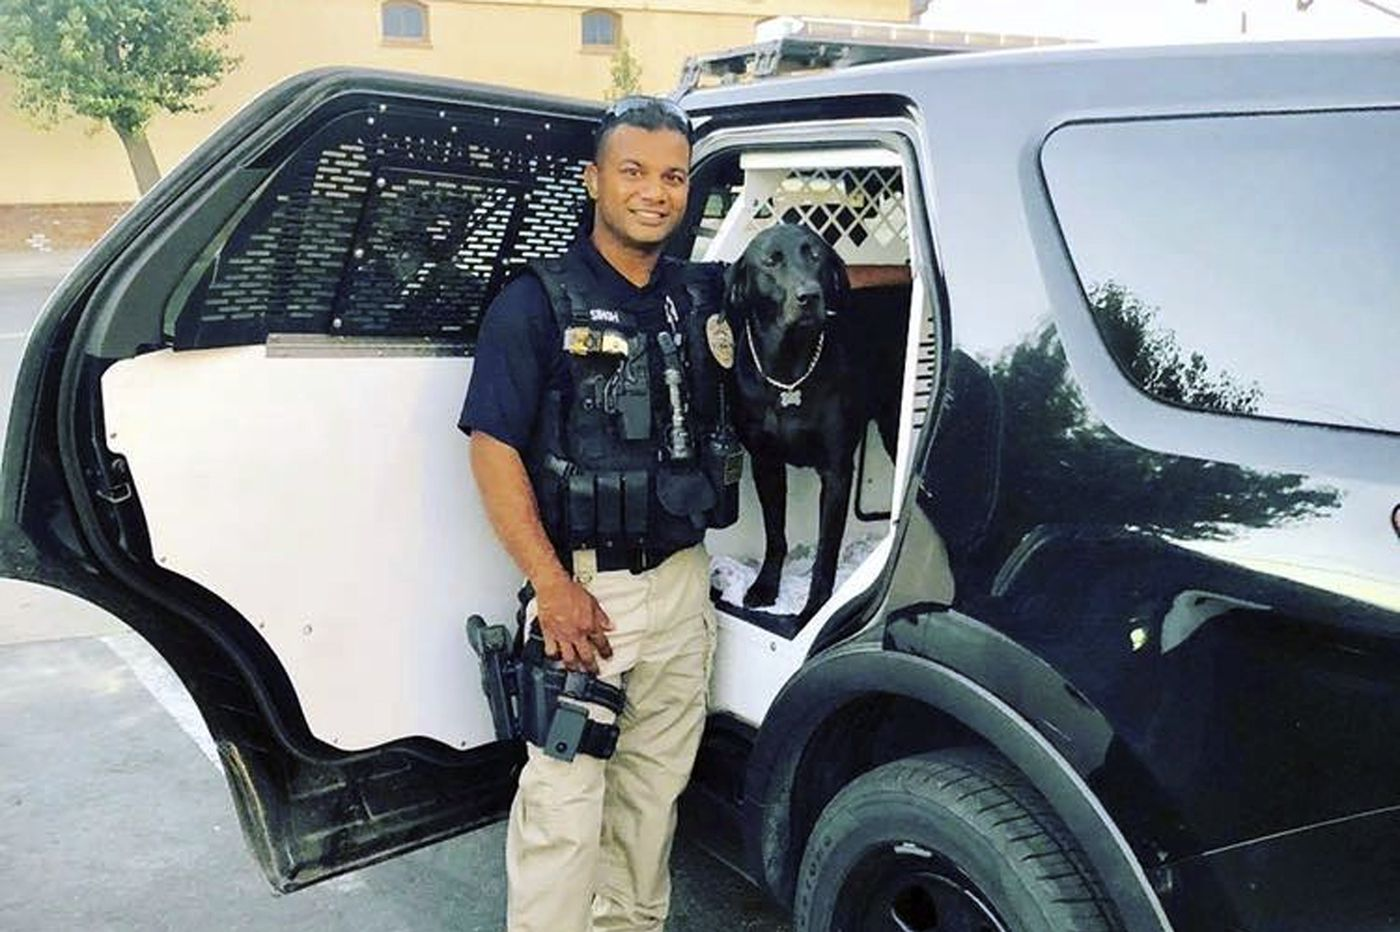 Authorities launch manhunt after killing of police officer